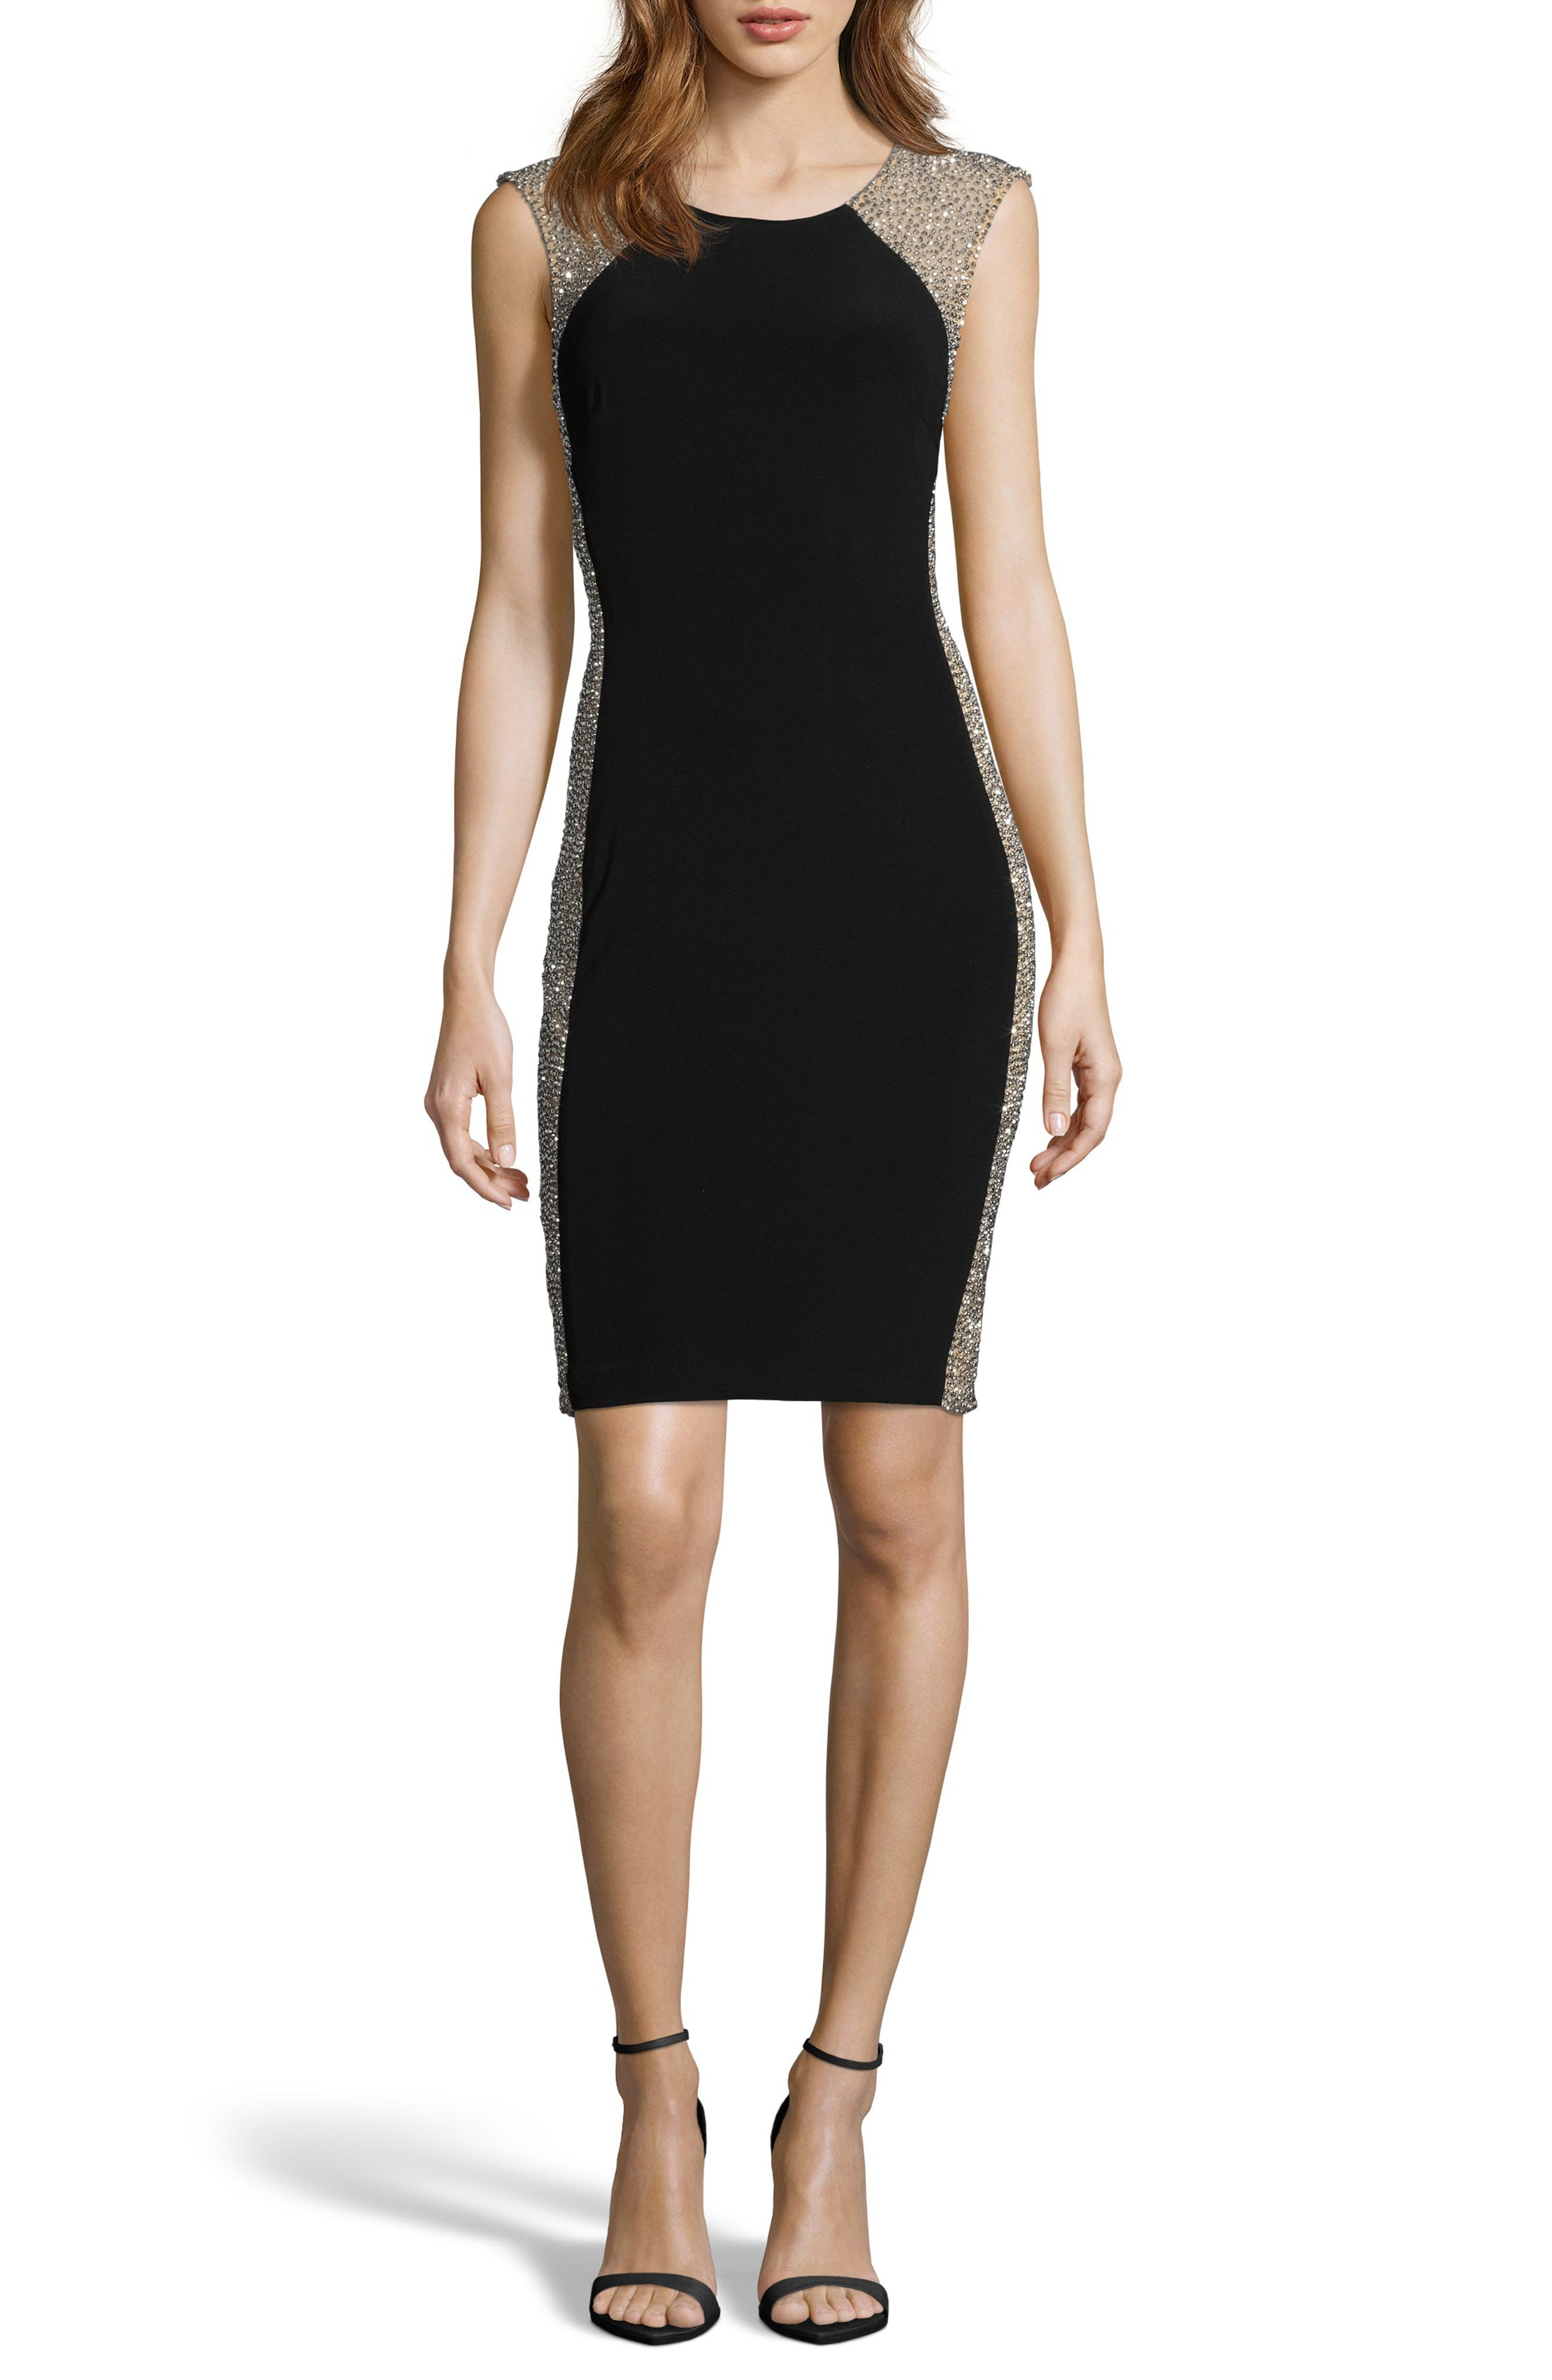 XSCAPE Beaded Cocktail Dress, Main, color, BLACK/ NUDE/ SILVER